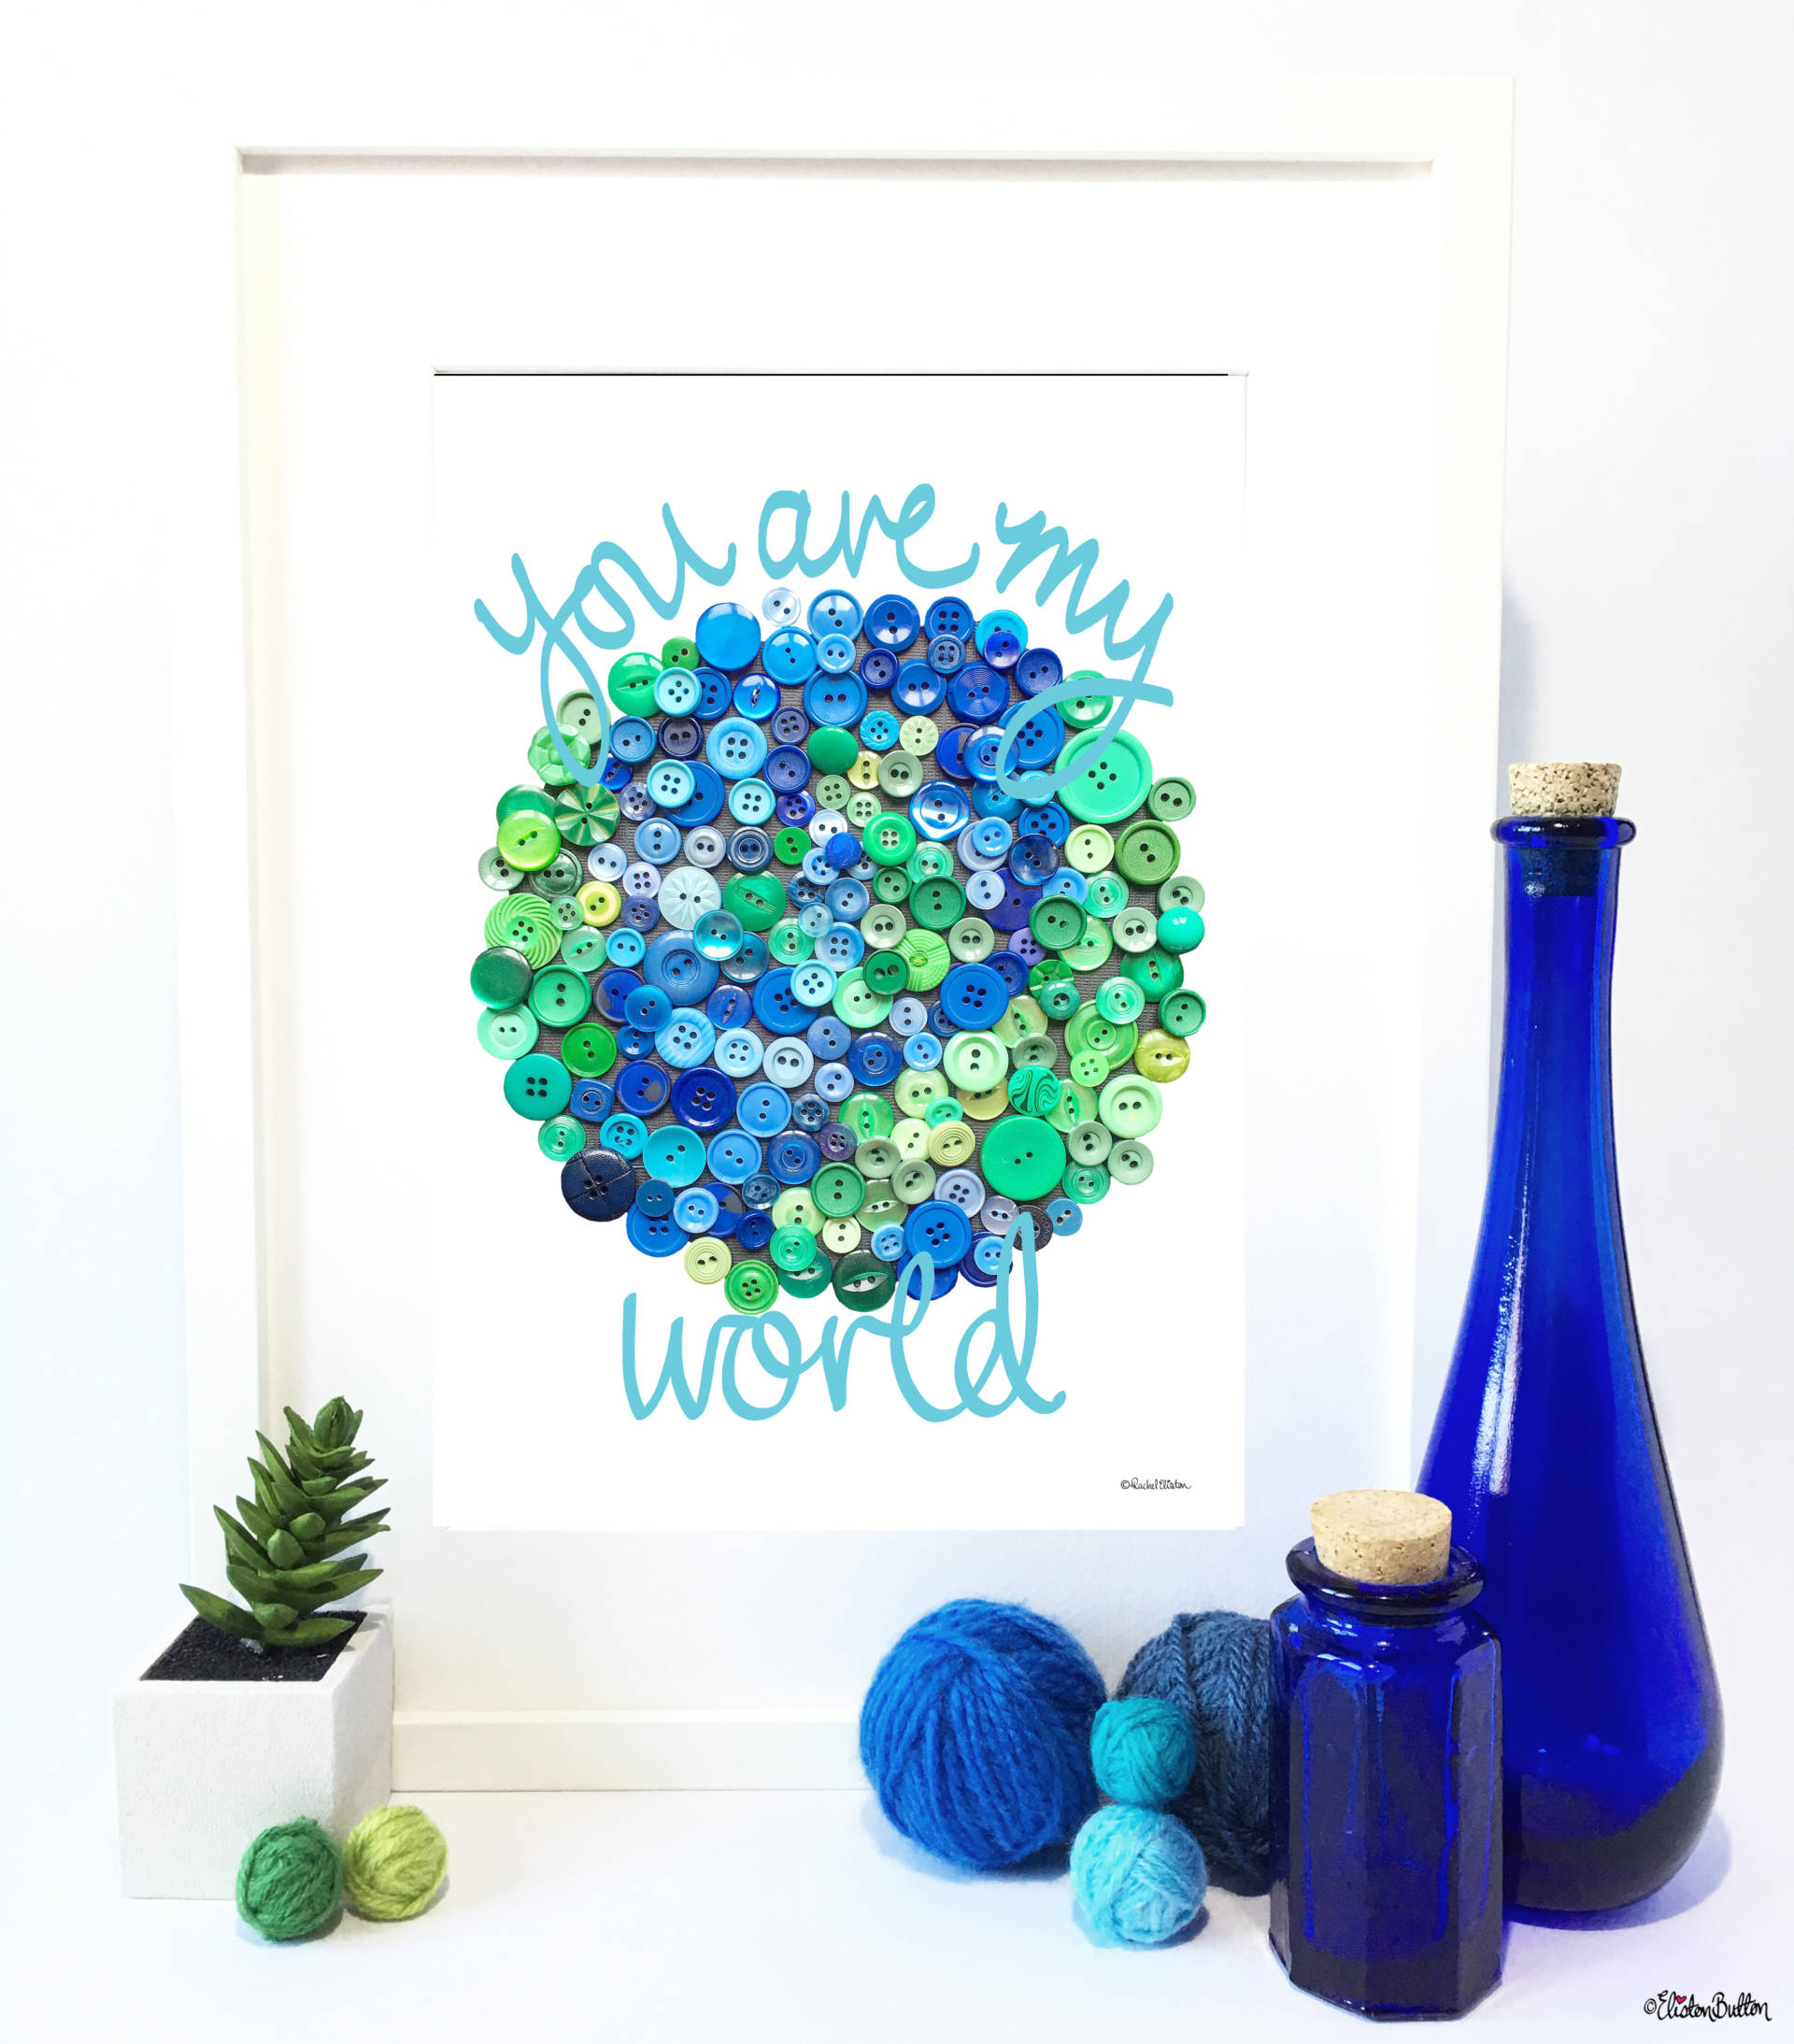 Blue You are My World Print in Frame with Blue Glass Blottles, Succulents and Yarn Props - Blue You are My World Print in Frame with Blue Glass Blottles, Succulents and Yarn Props - Create 30 - No. 13 - 'You Are My World' Button Art Quote Prints at www.elistonbutton.com - Eliston Button - That Crafty Kid – Art, Design, Craft & Adventure.